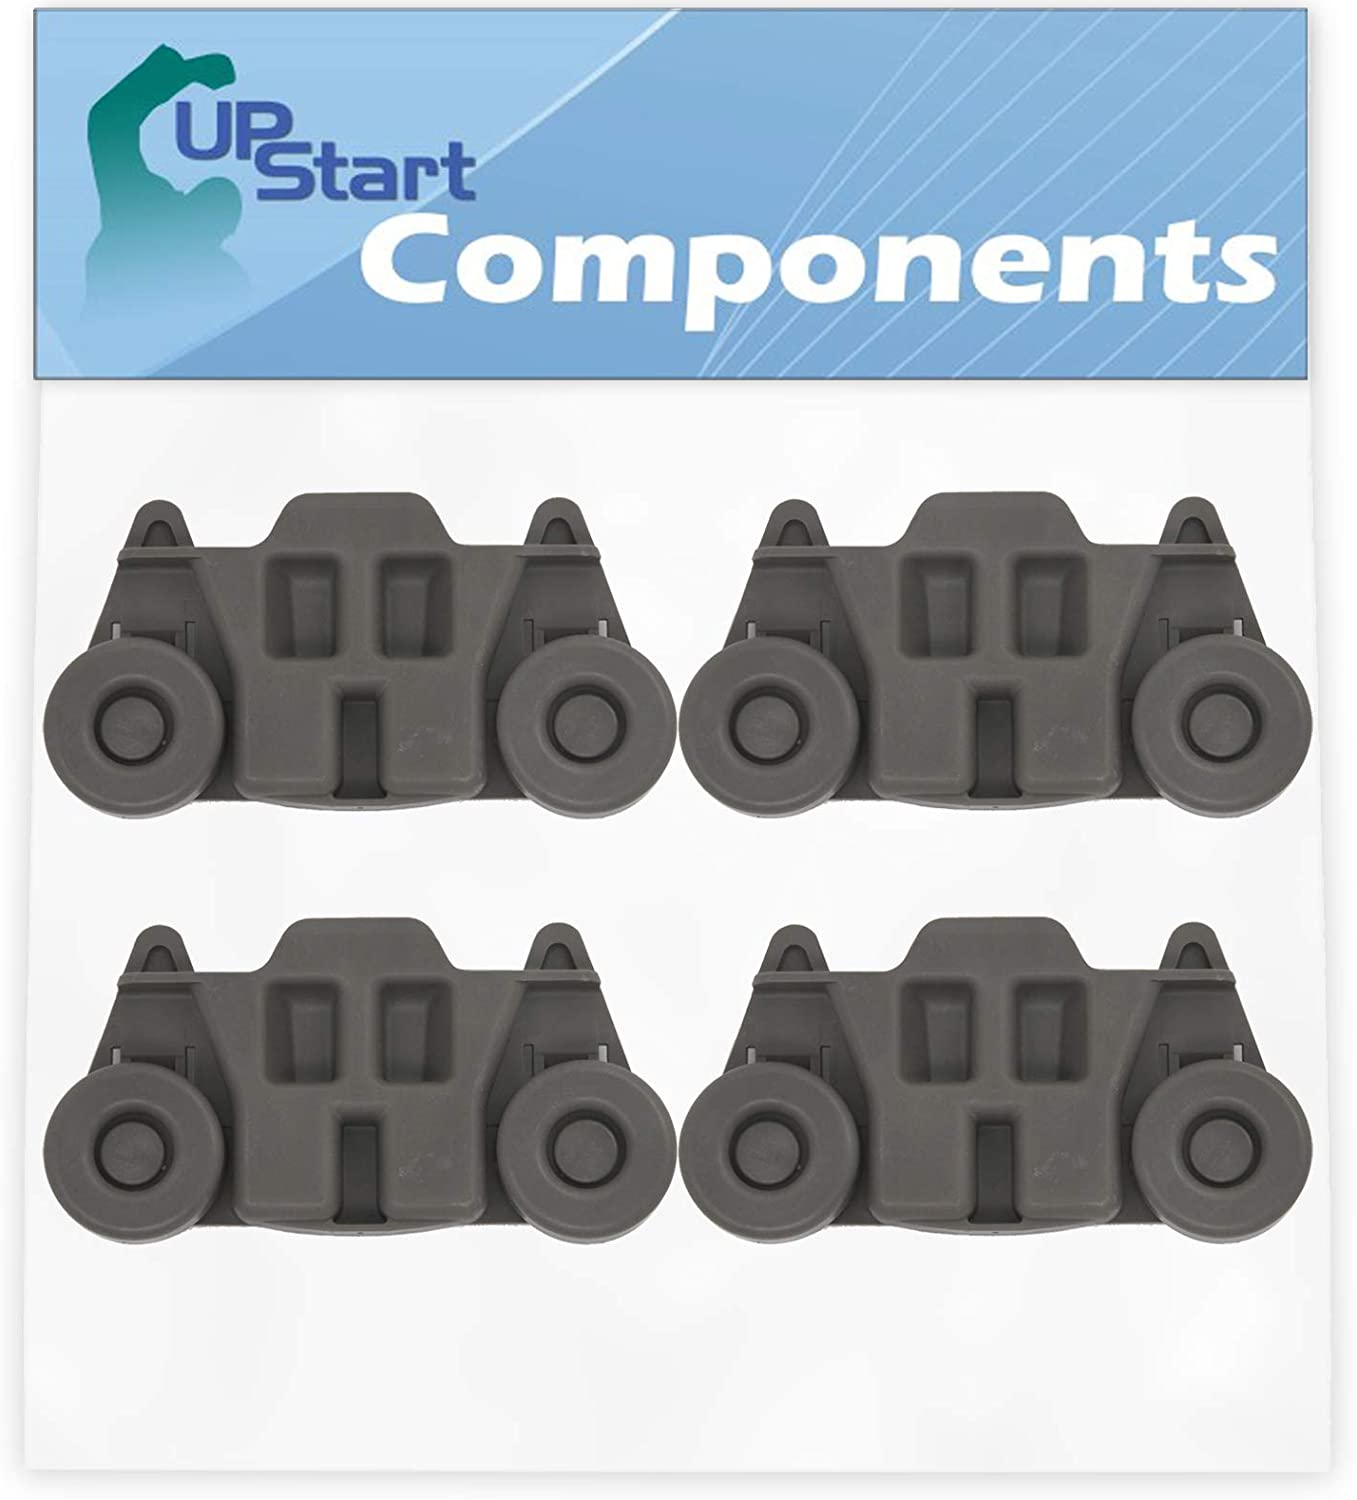 4-Pack W10195416 Lower Dishwasher Wheel Replacement for Maytag MDB8959SBS2 Dishwasher - Compatible with W10195416V Dishwasher Wheel - UpStart Components Brand